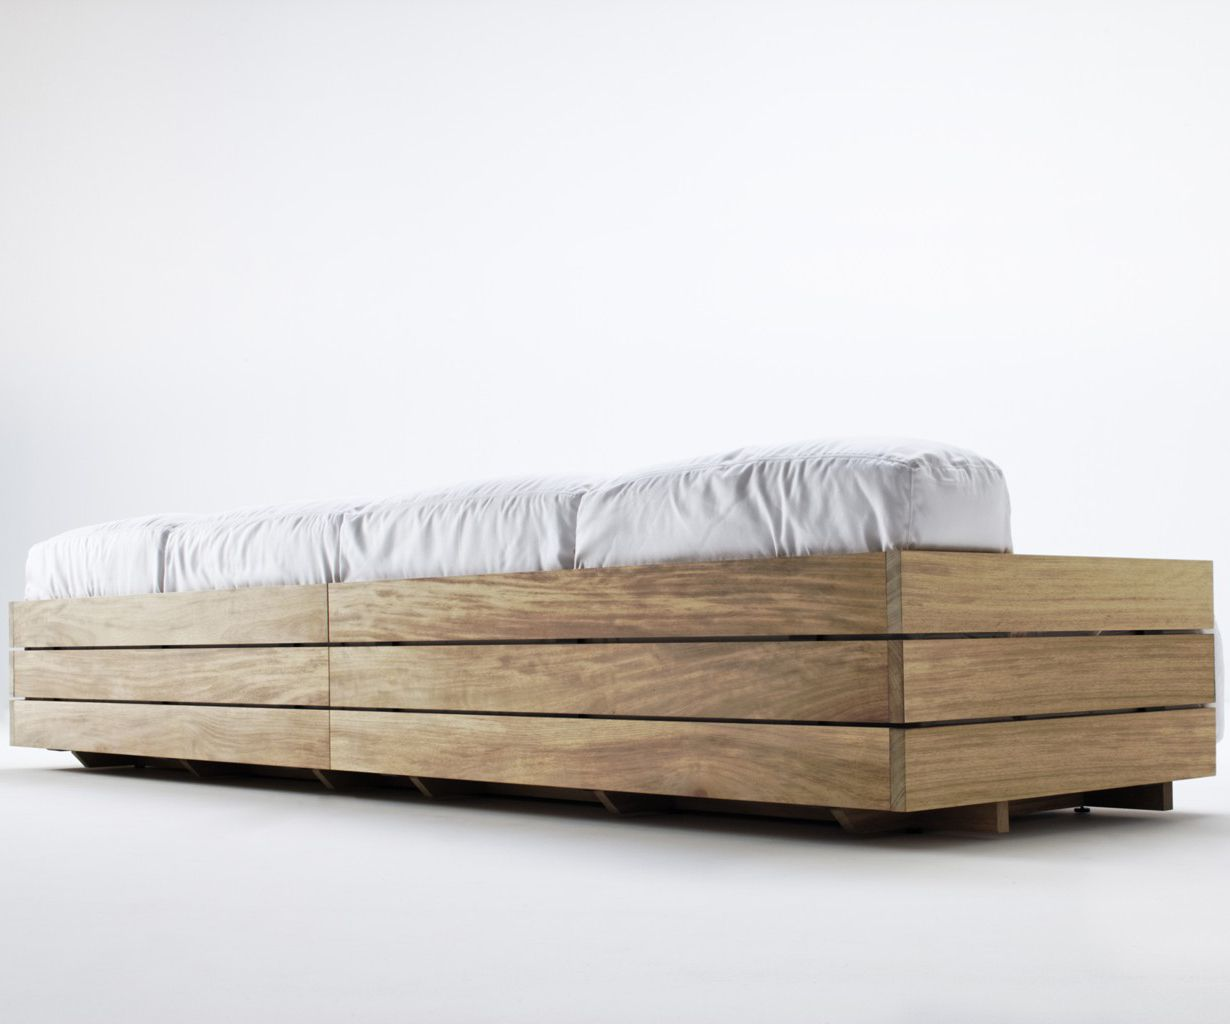 Divani Con Pallet Pinterest 12 Creative Wood Pallet Sofa Design Ideas Picturesque